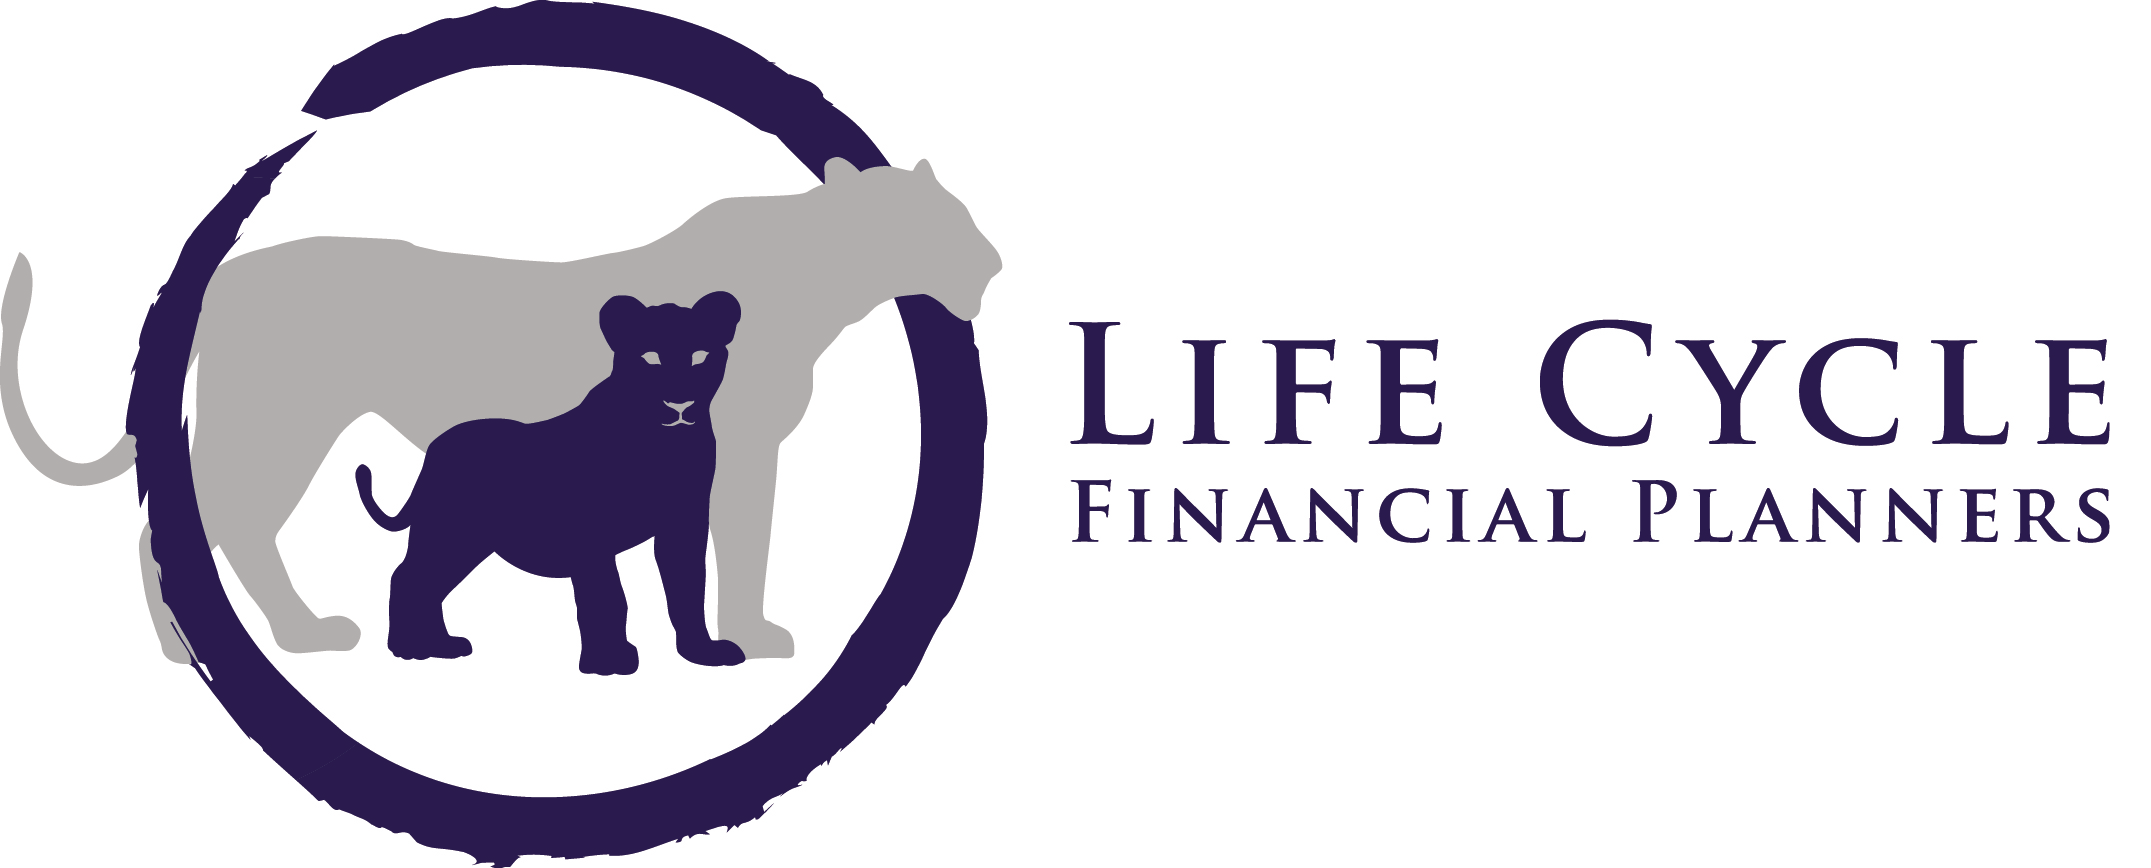 Life Cycle Financial Planners